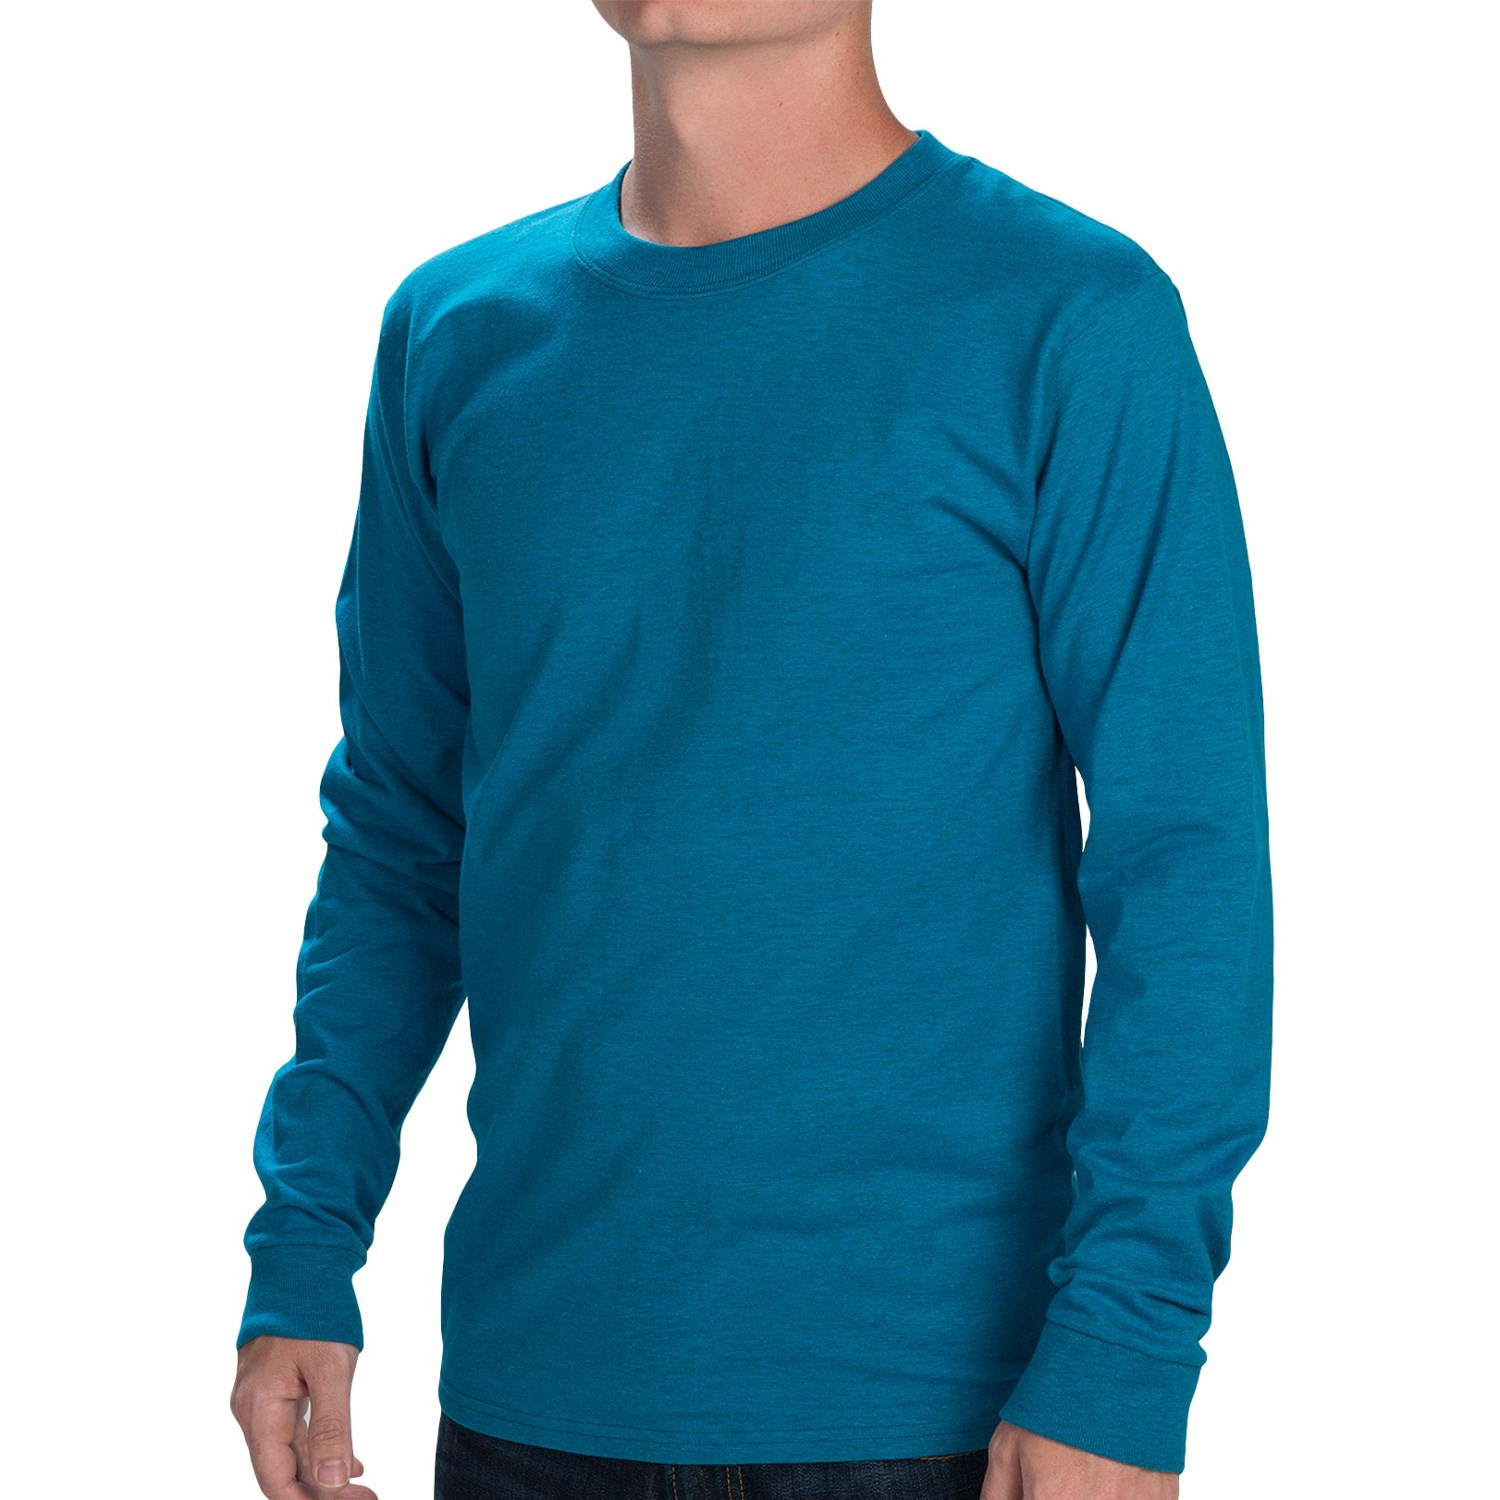 Hanes beefy t shirt long sleeve for men and women for Hanes beefy t custom shirts